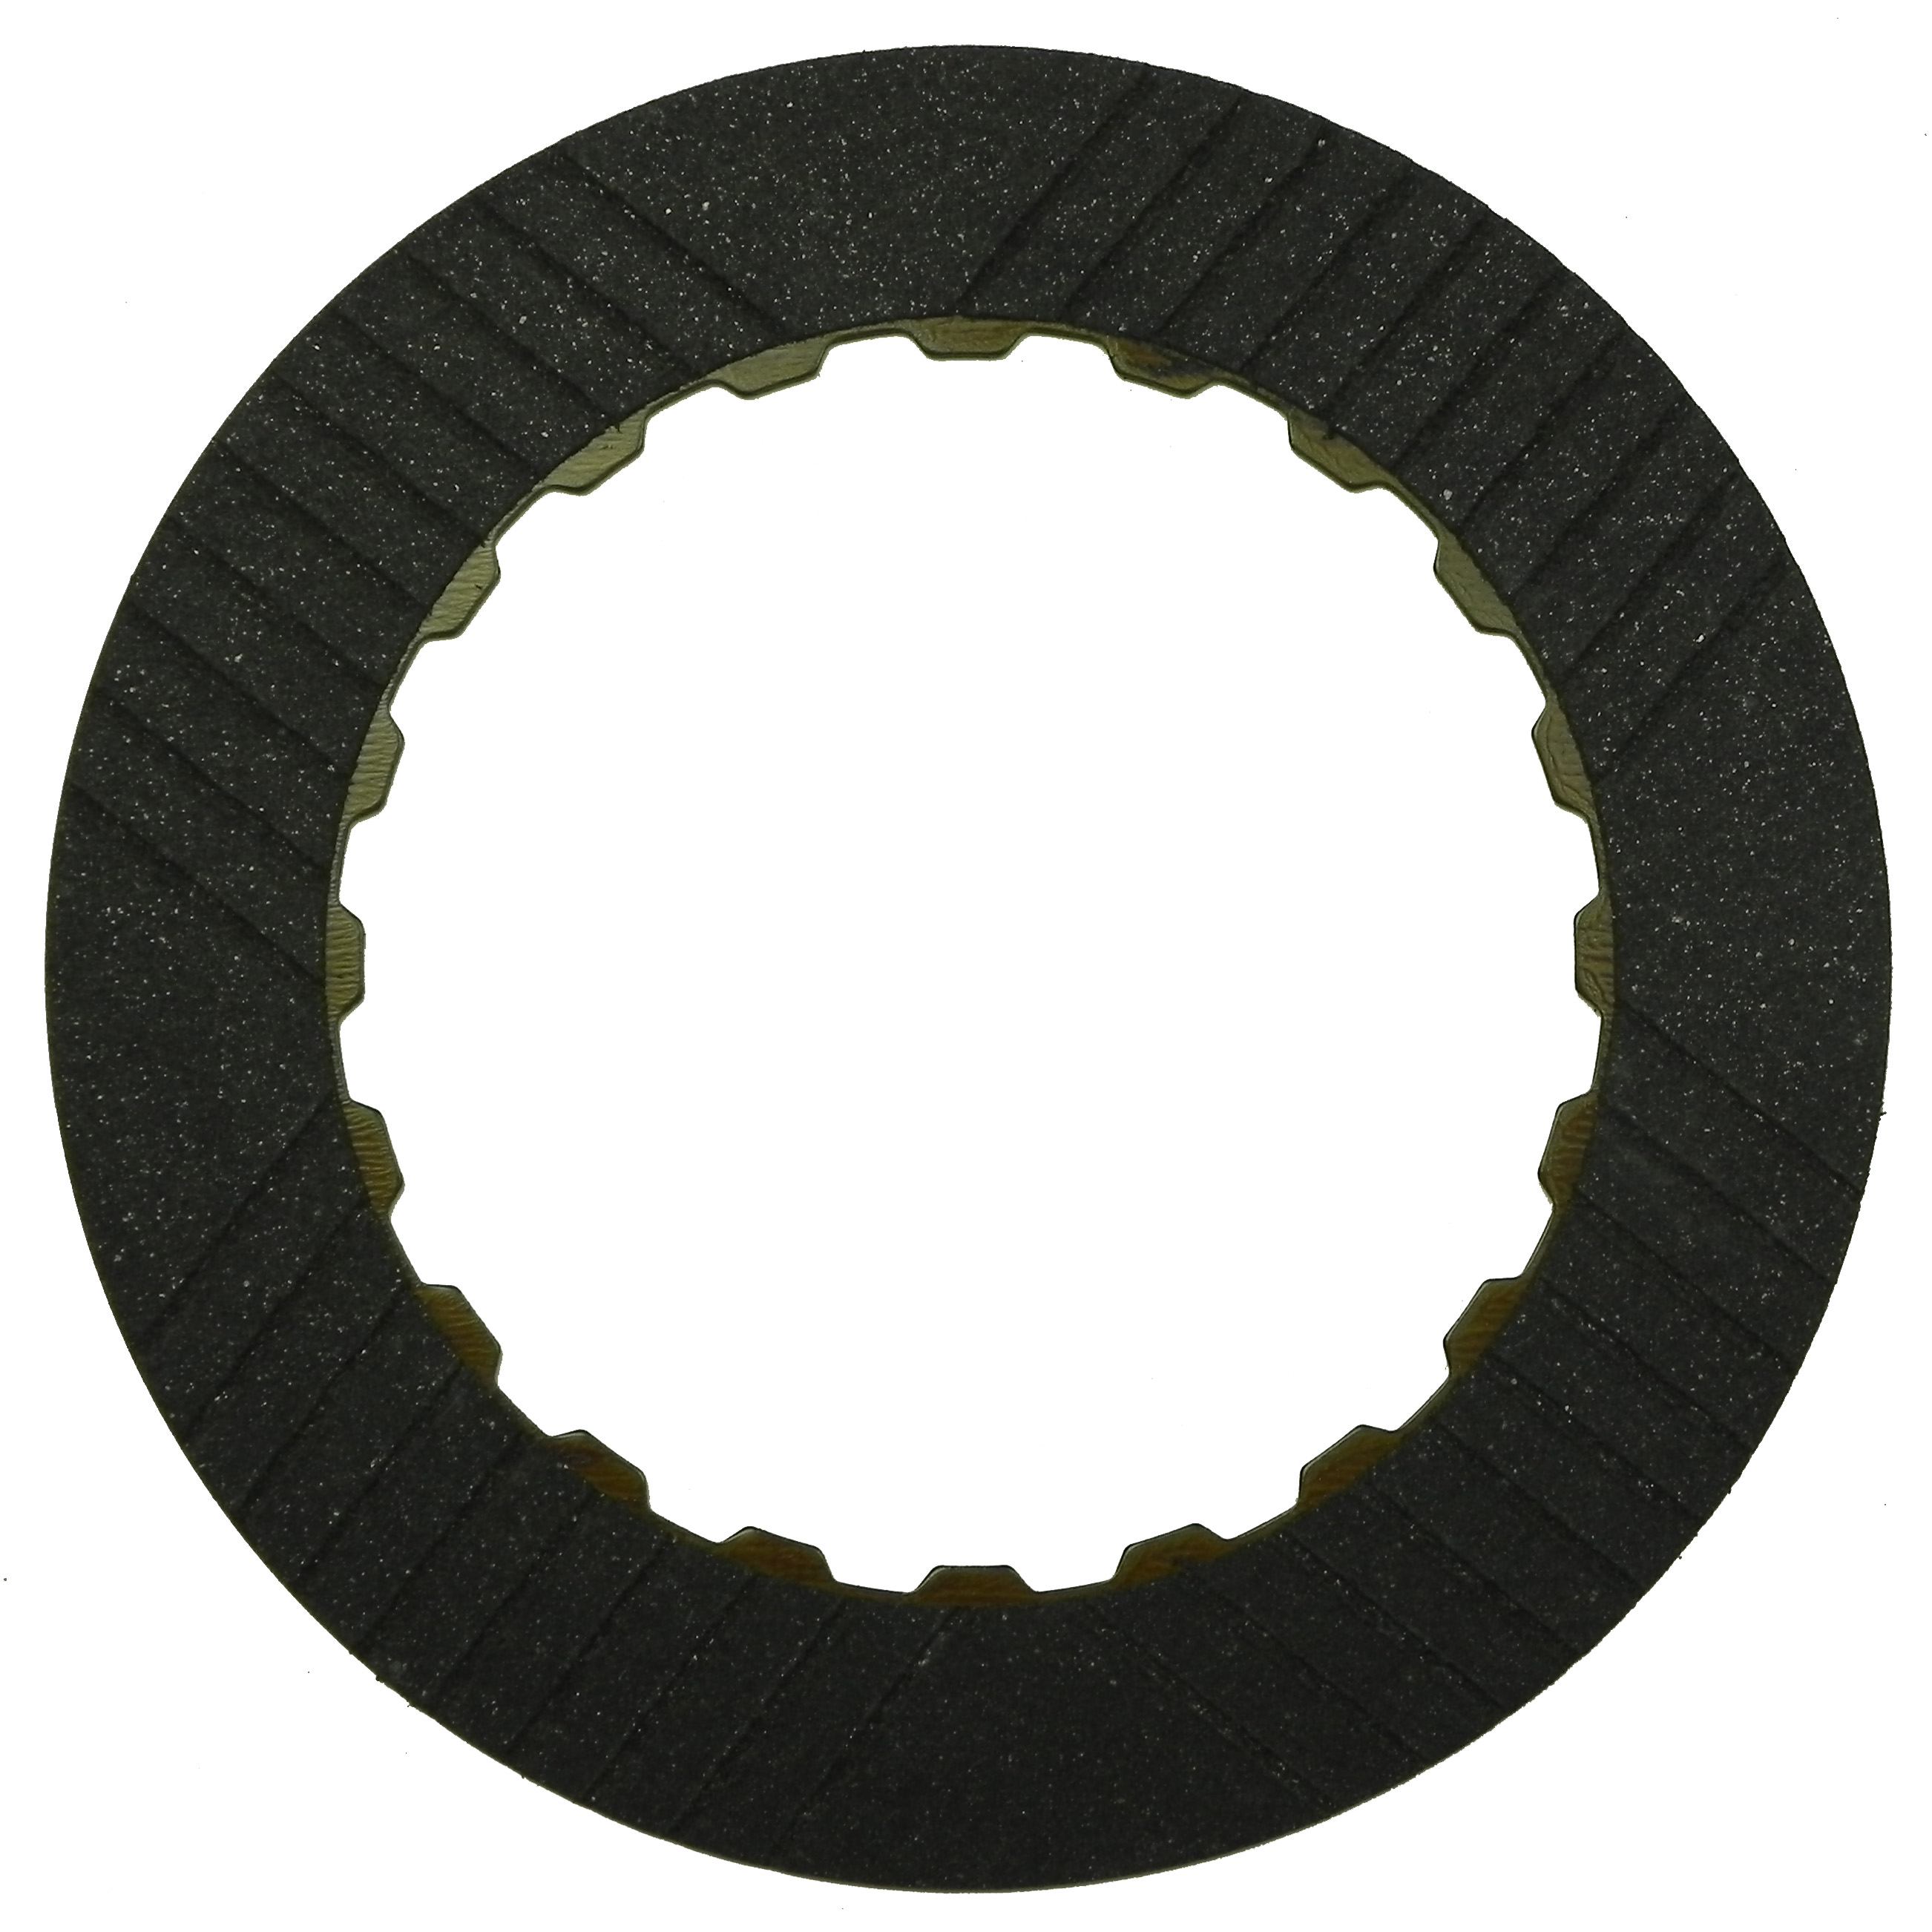 R558135 | 1998-ON Friction Clutch Plate High Energy Forward Single Sided, ID Spline High Energy